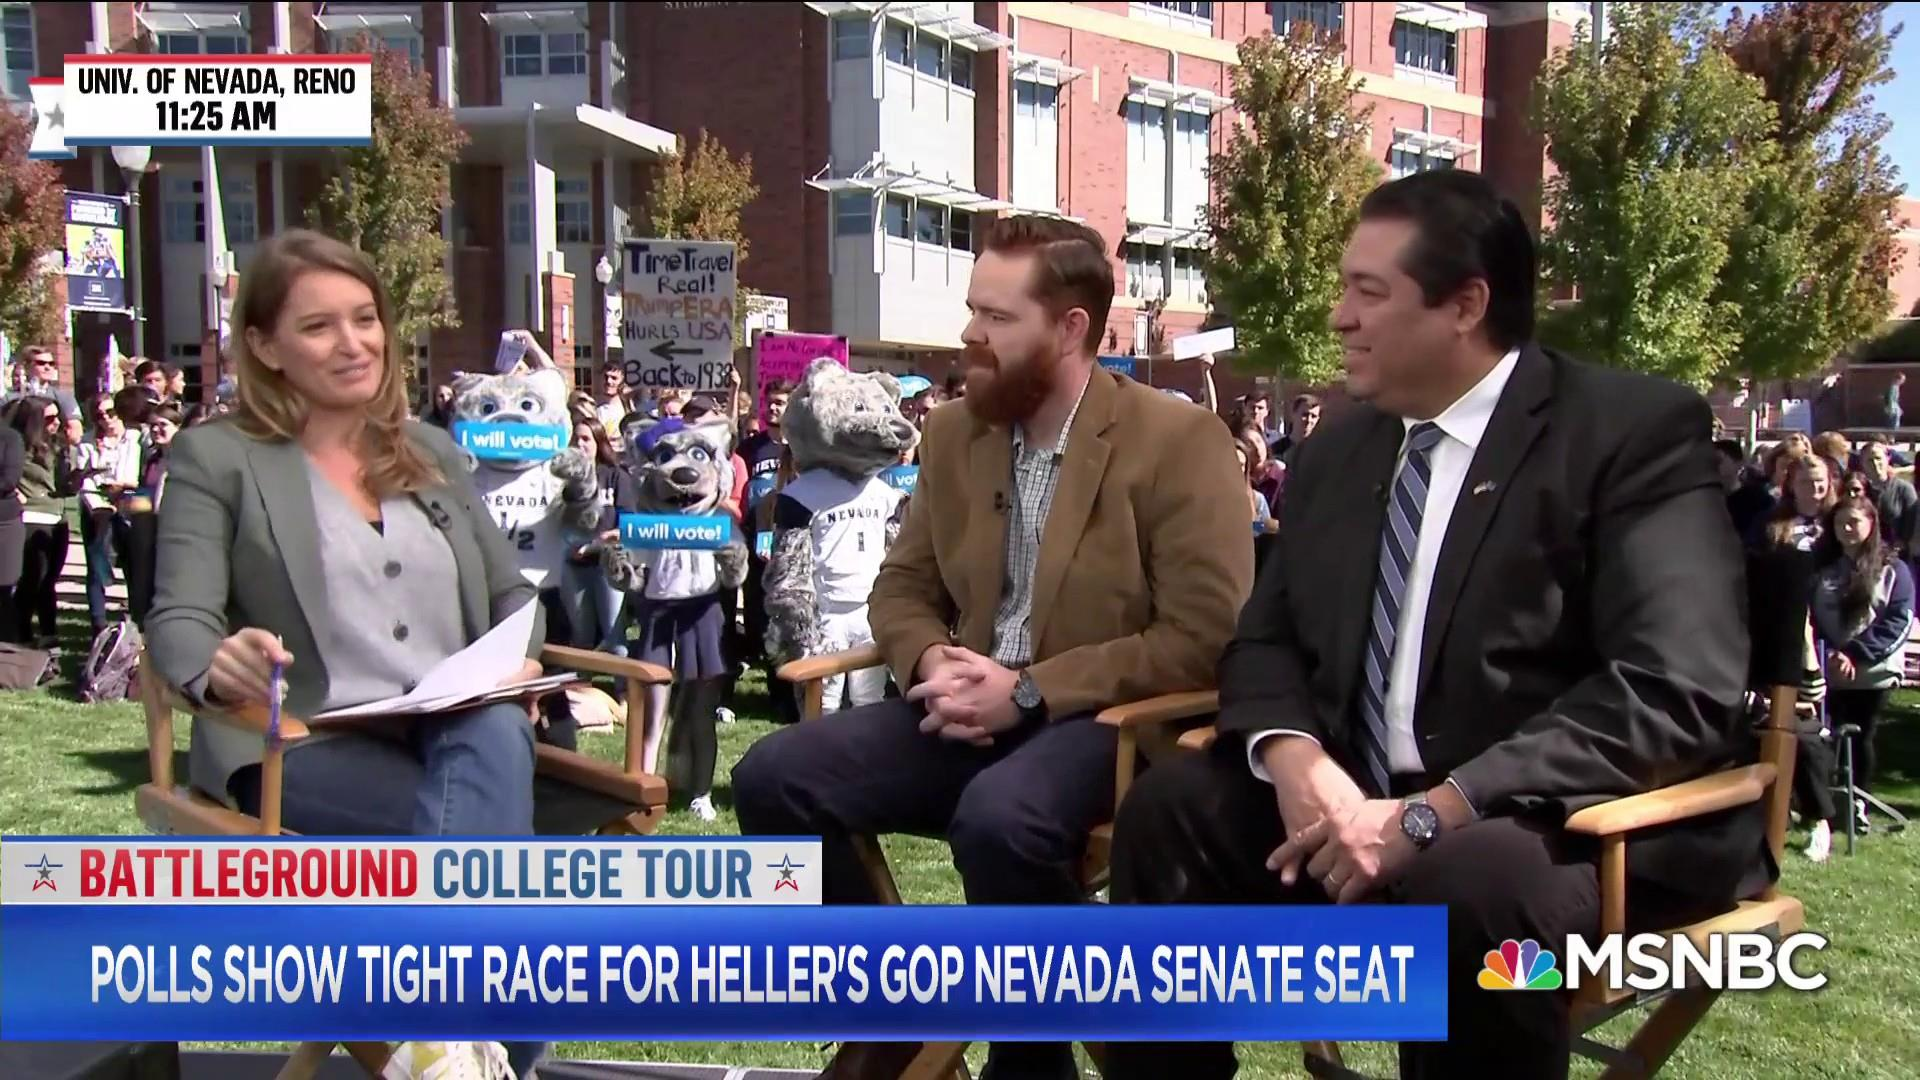 Dean Heller's fight for his Senate seat